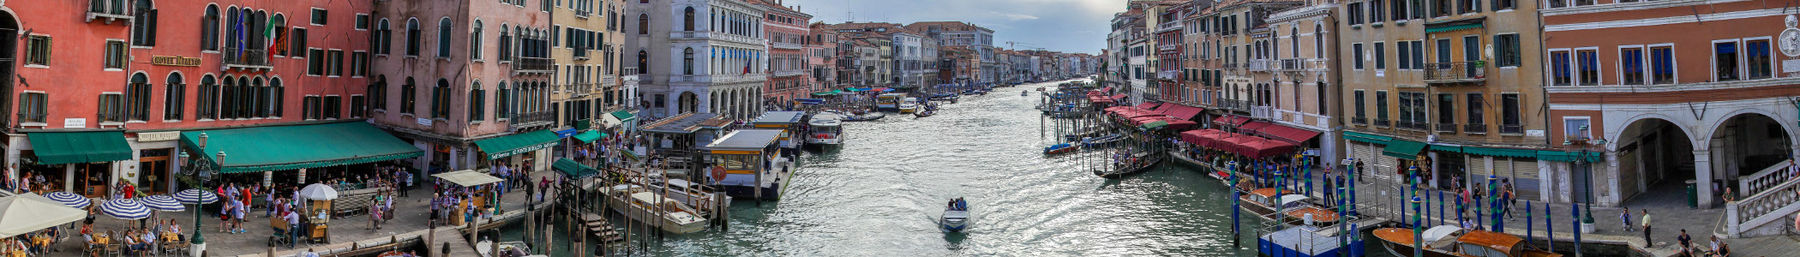 Venice banner Grand Canal panorama.jpg